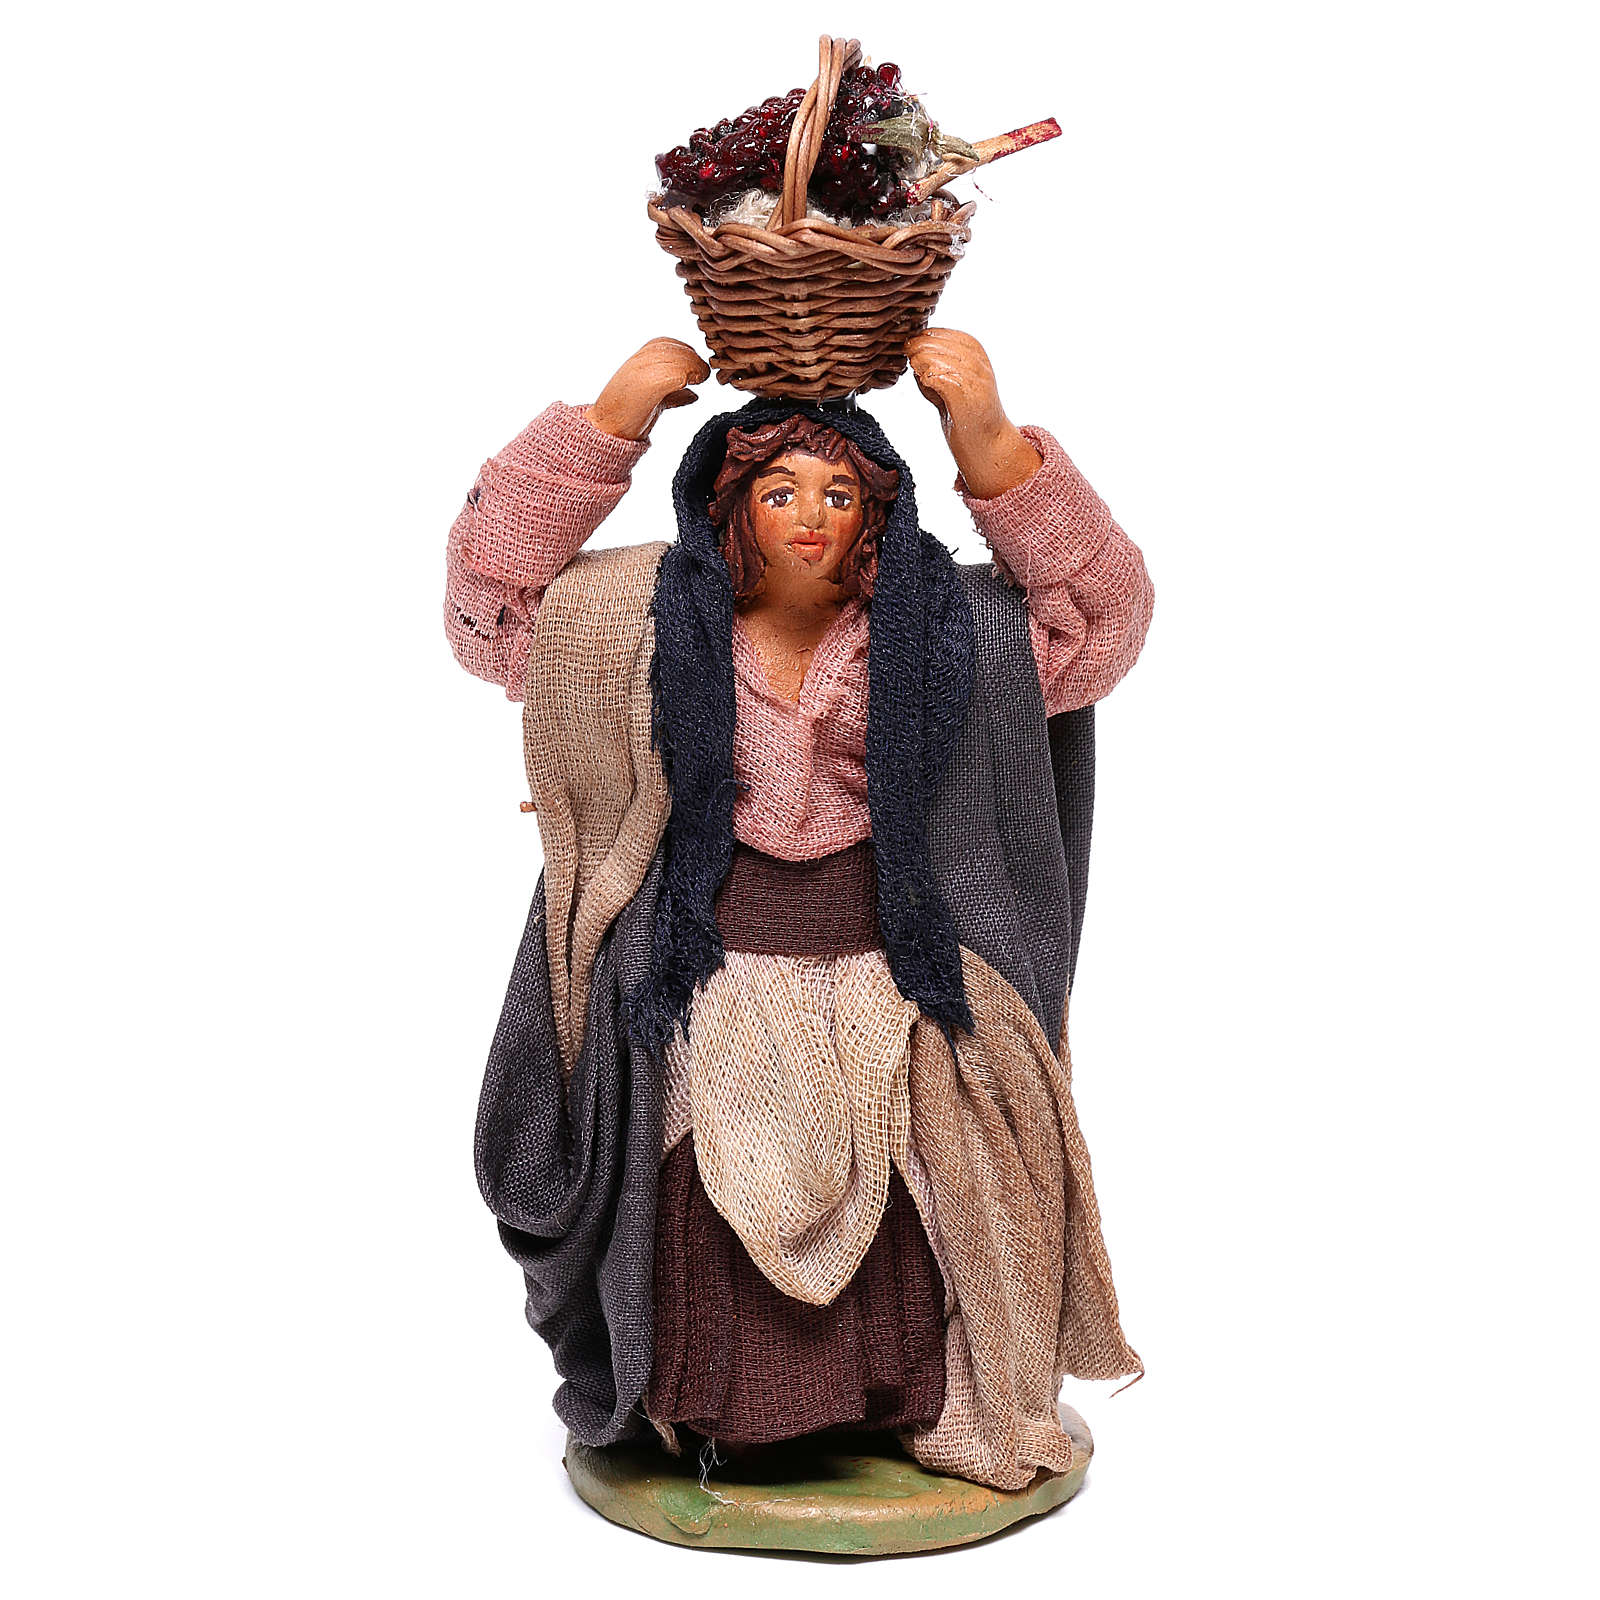 Woman with grapes basket on head 10cm neapolitan Nativity 4